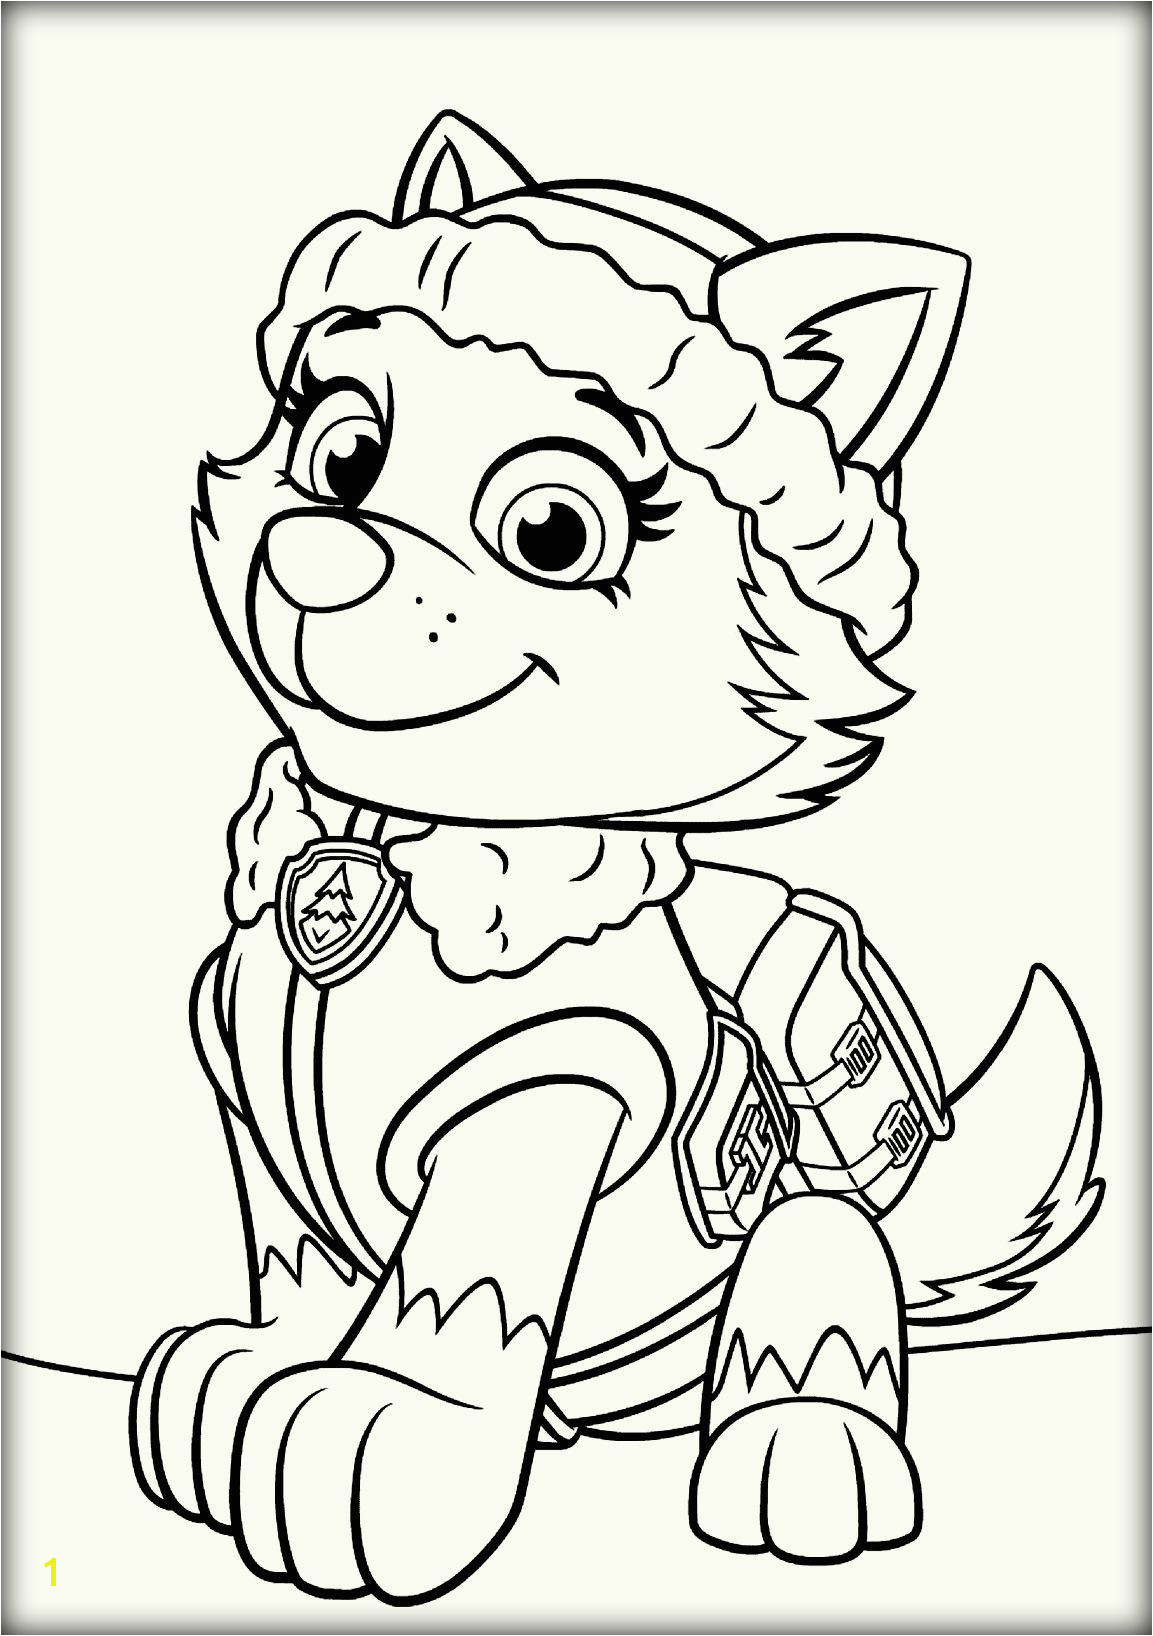 Paw Patrol Skye and Everest Coloring Pages Paw Patrol Everest Coloring Pages Coloring Pages